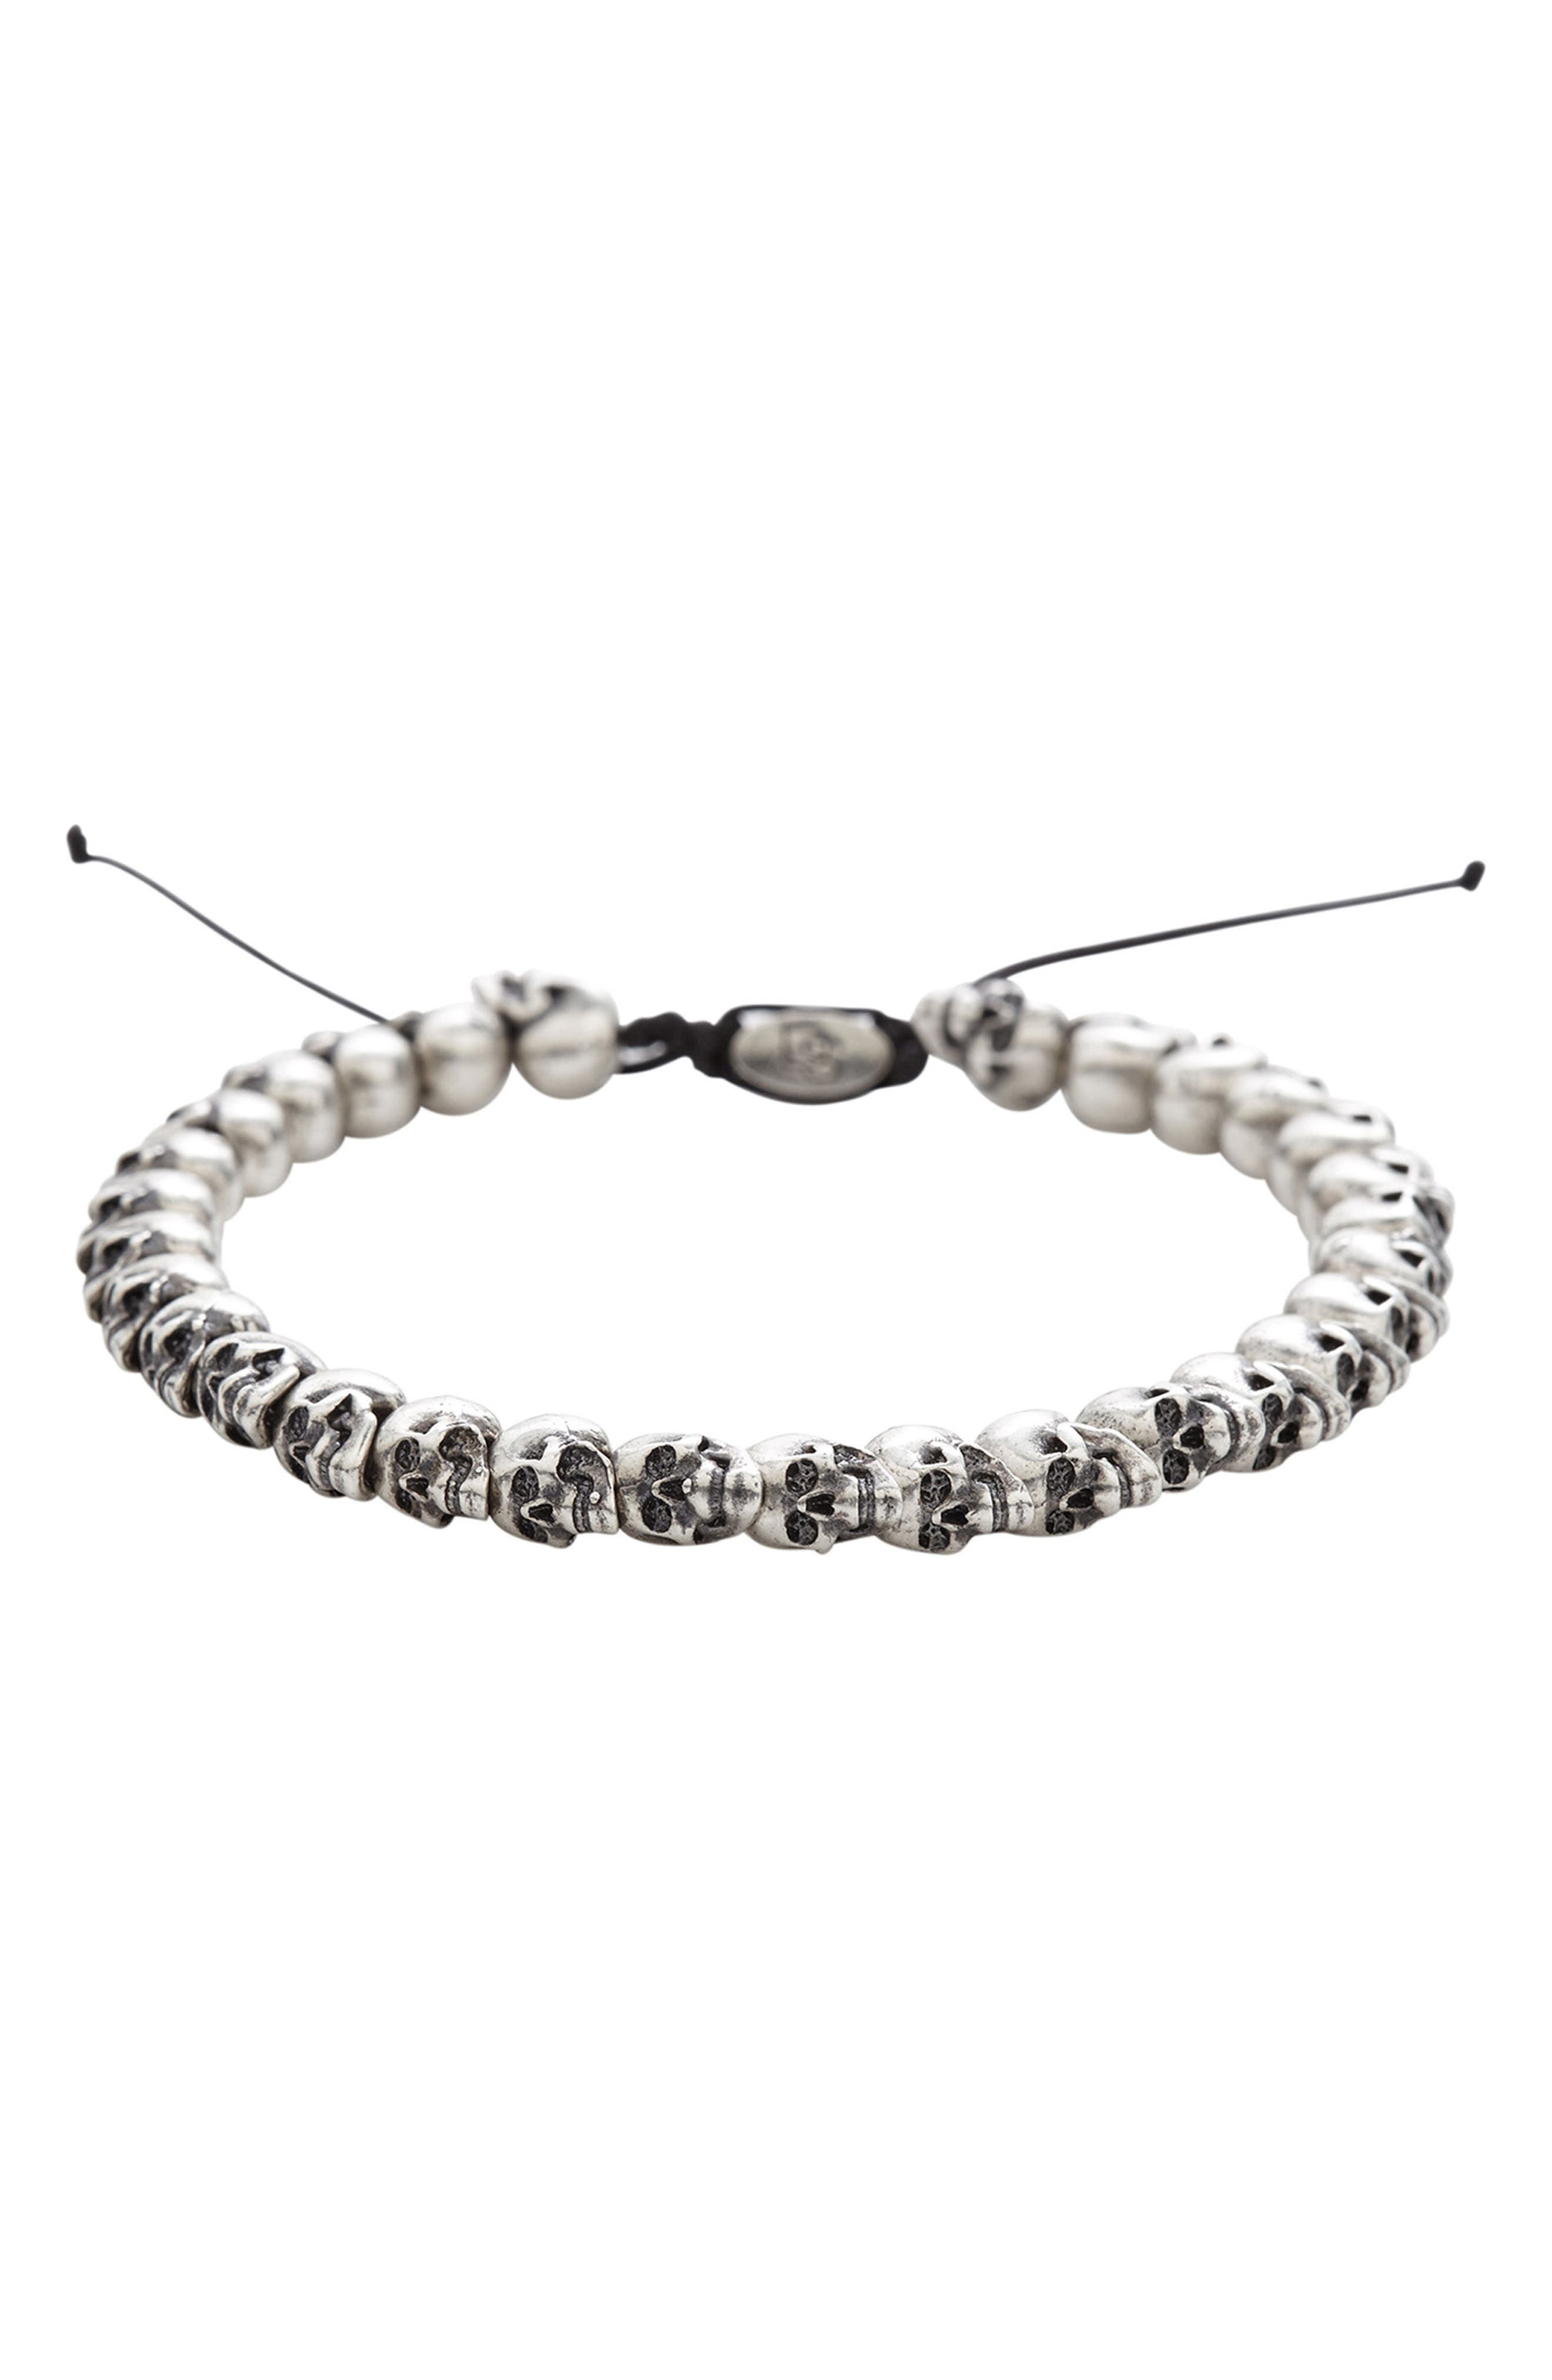 Skull Bead Bracelet,                         Main,                         color, Silver